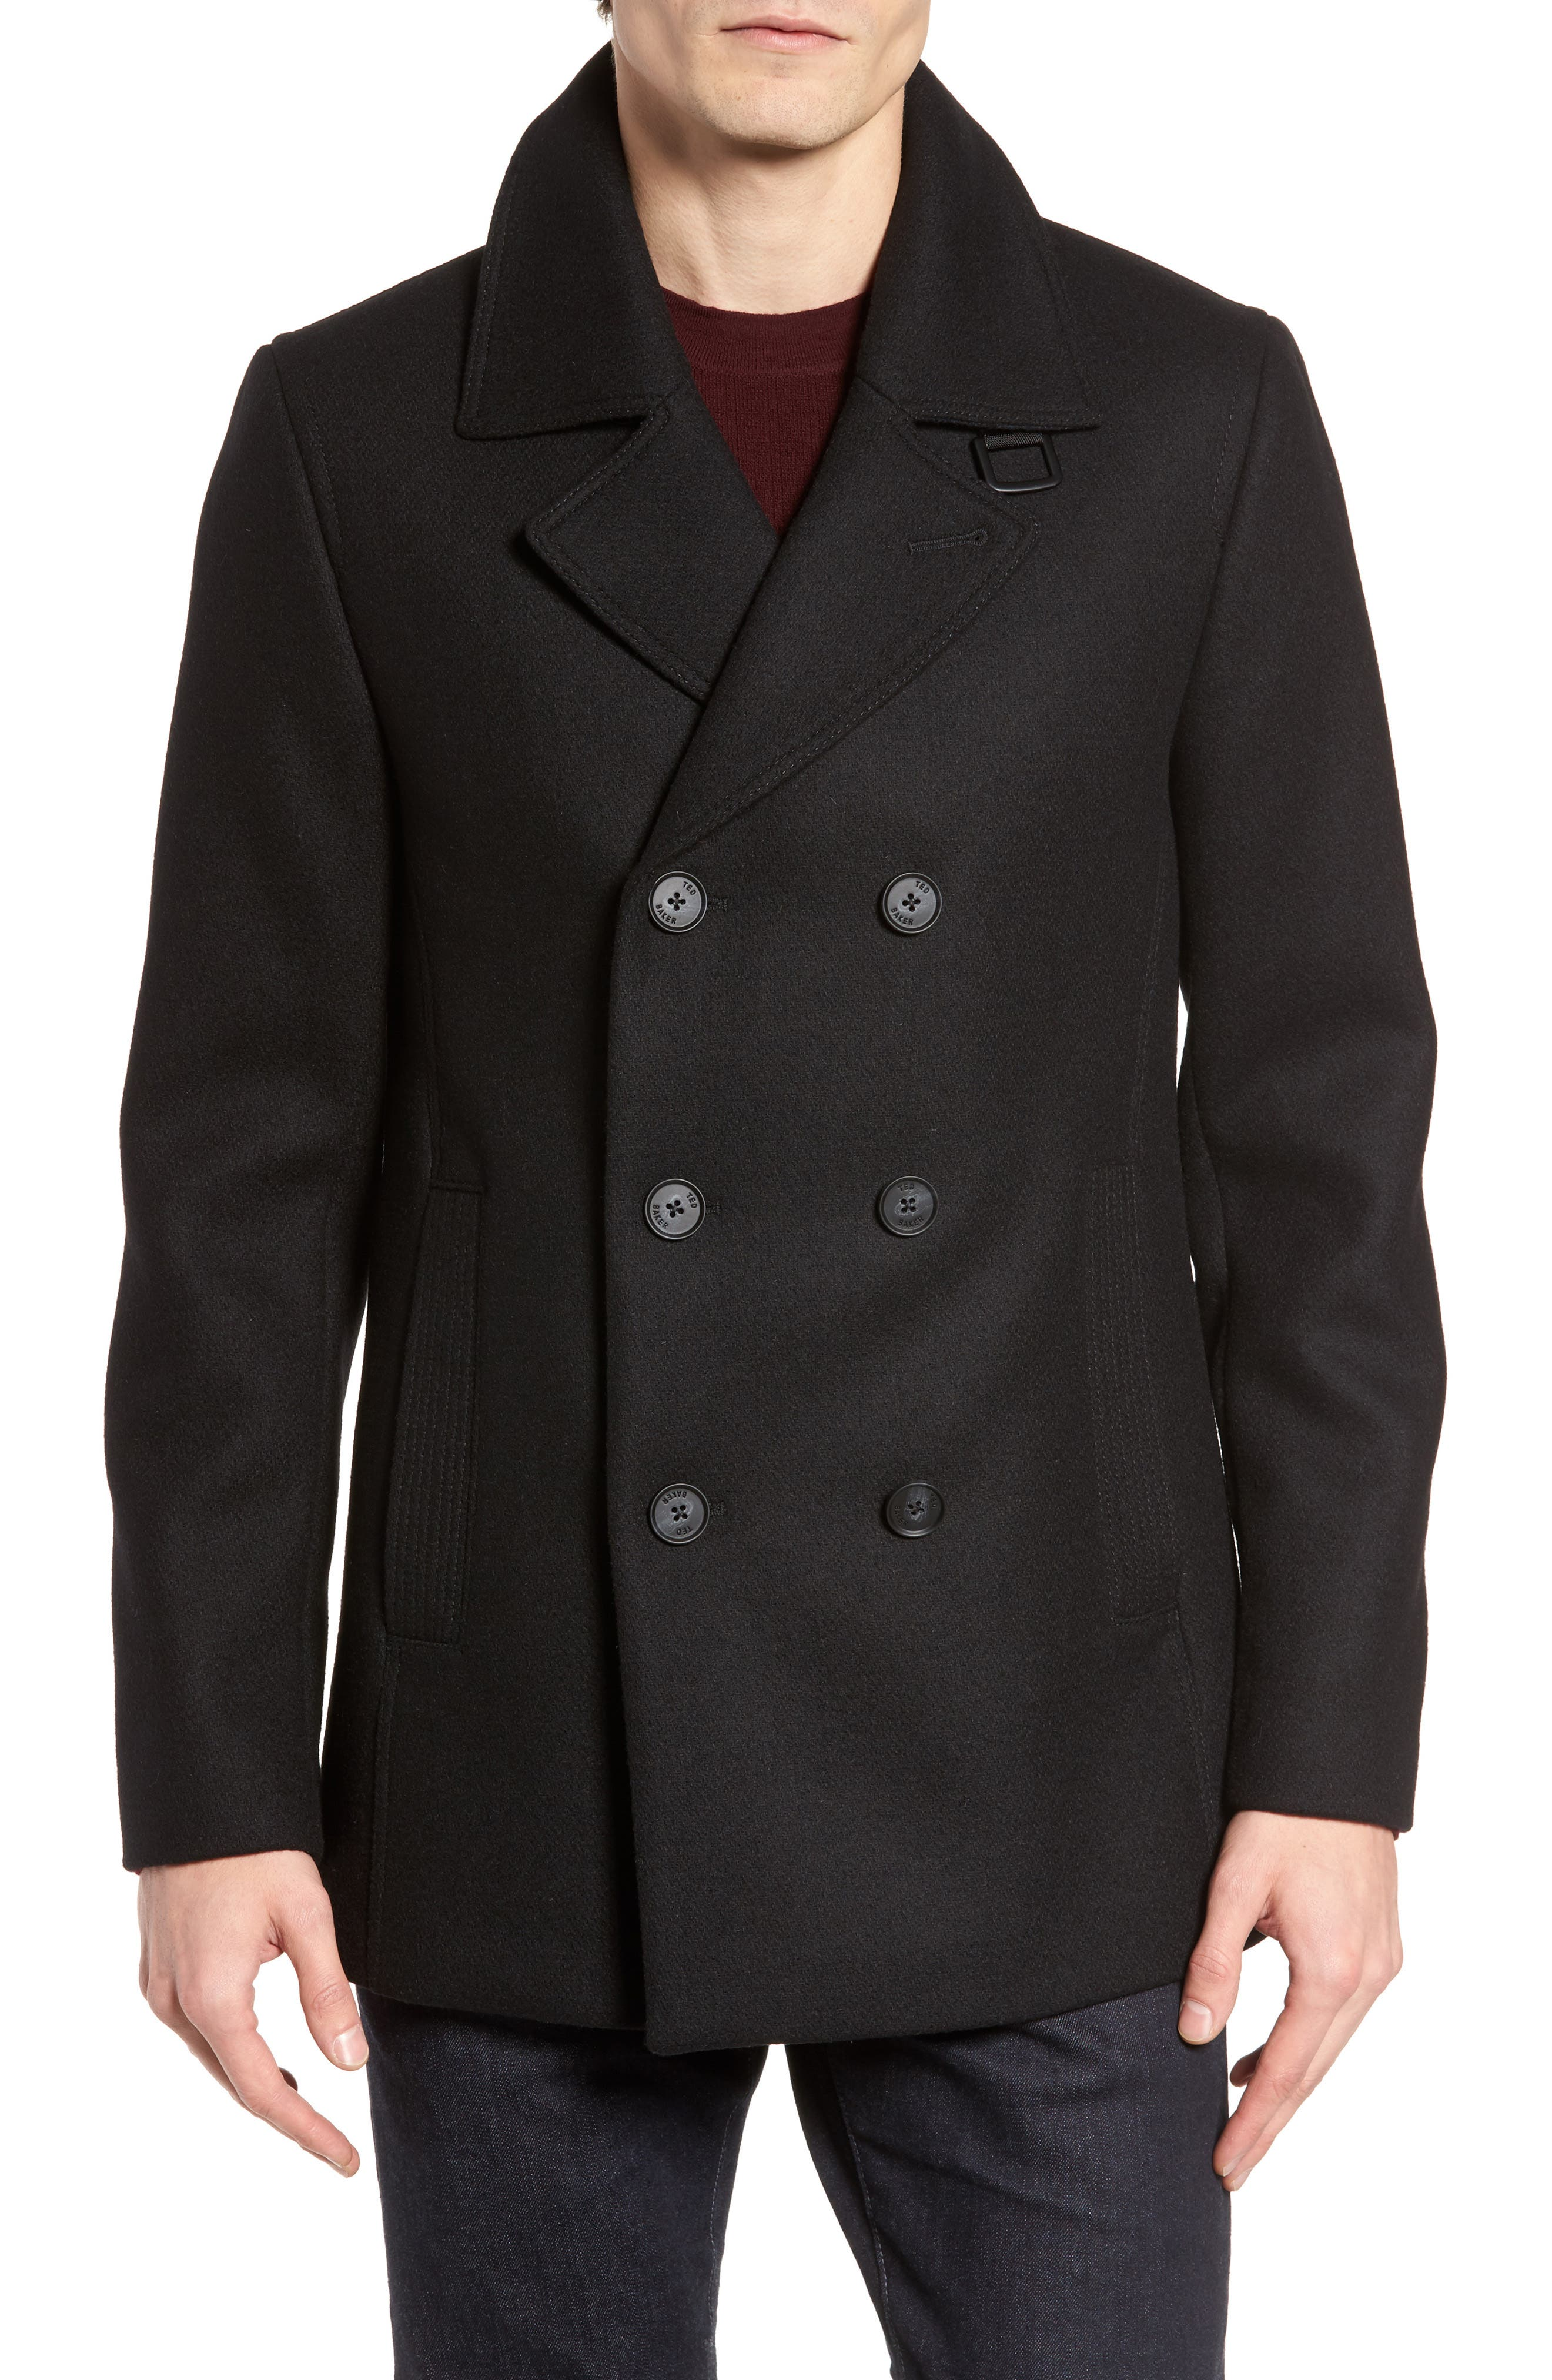 Zachary Trim Fit Double Breasted Peacoat,                             Main thumbnail 1, color,                             001